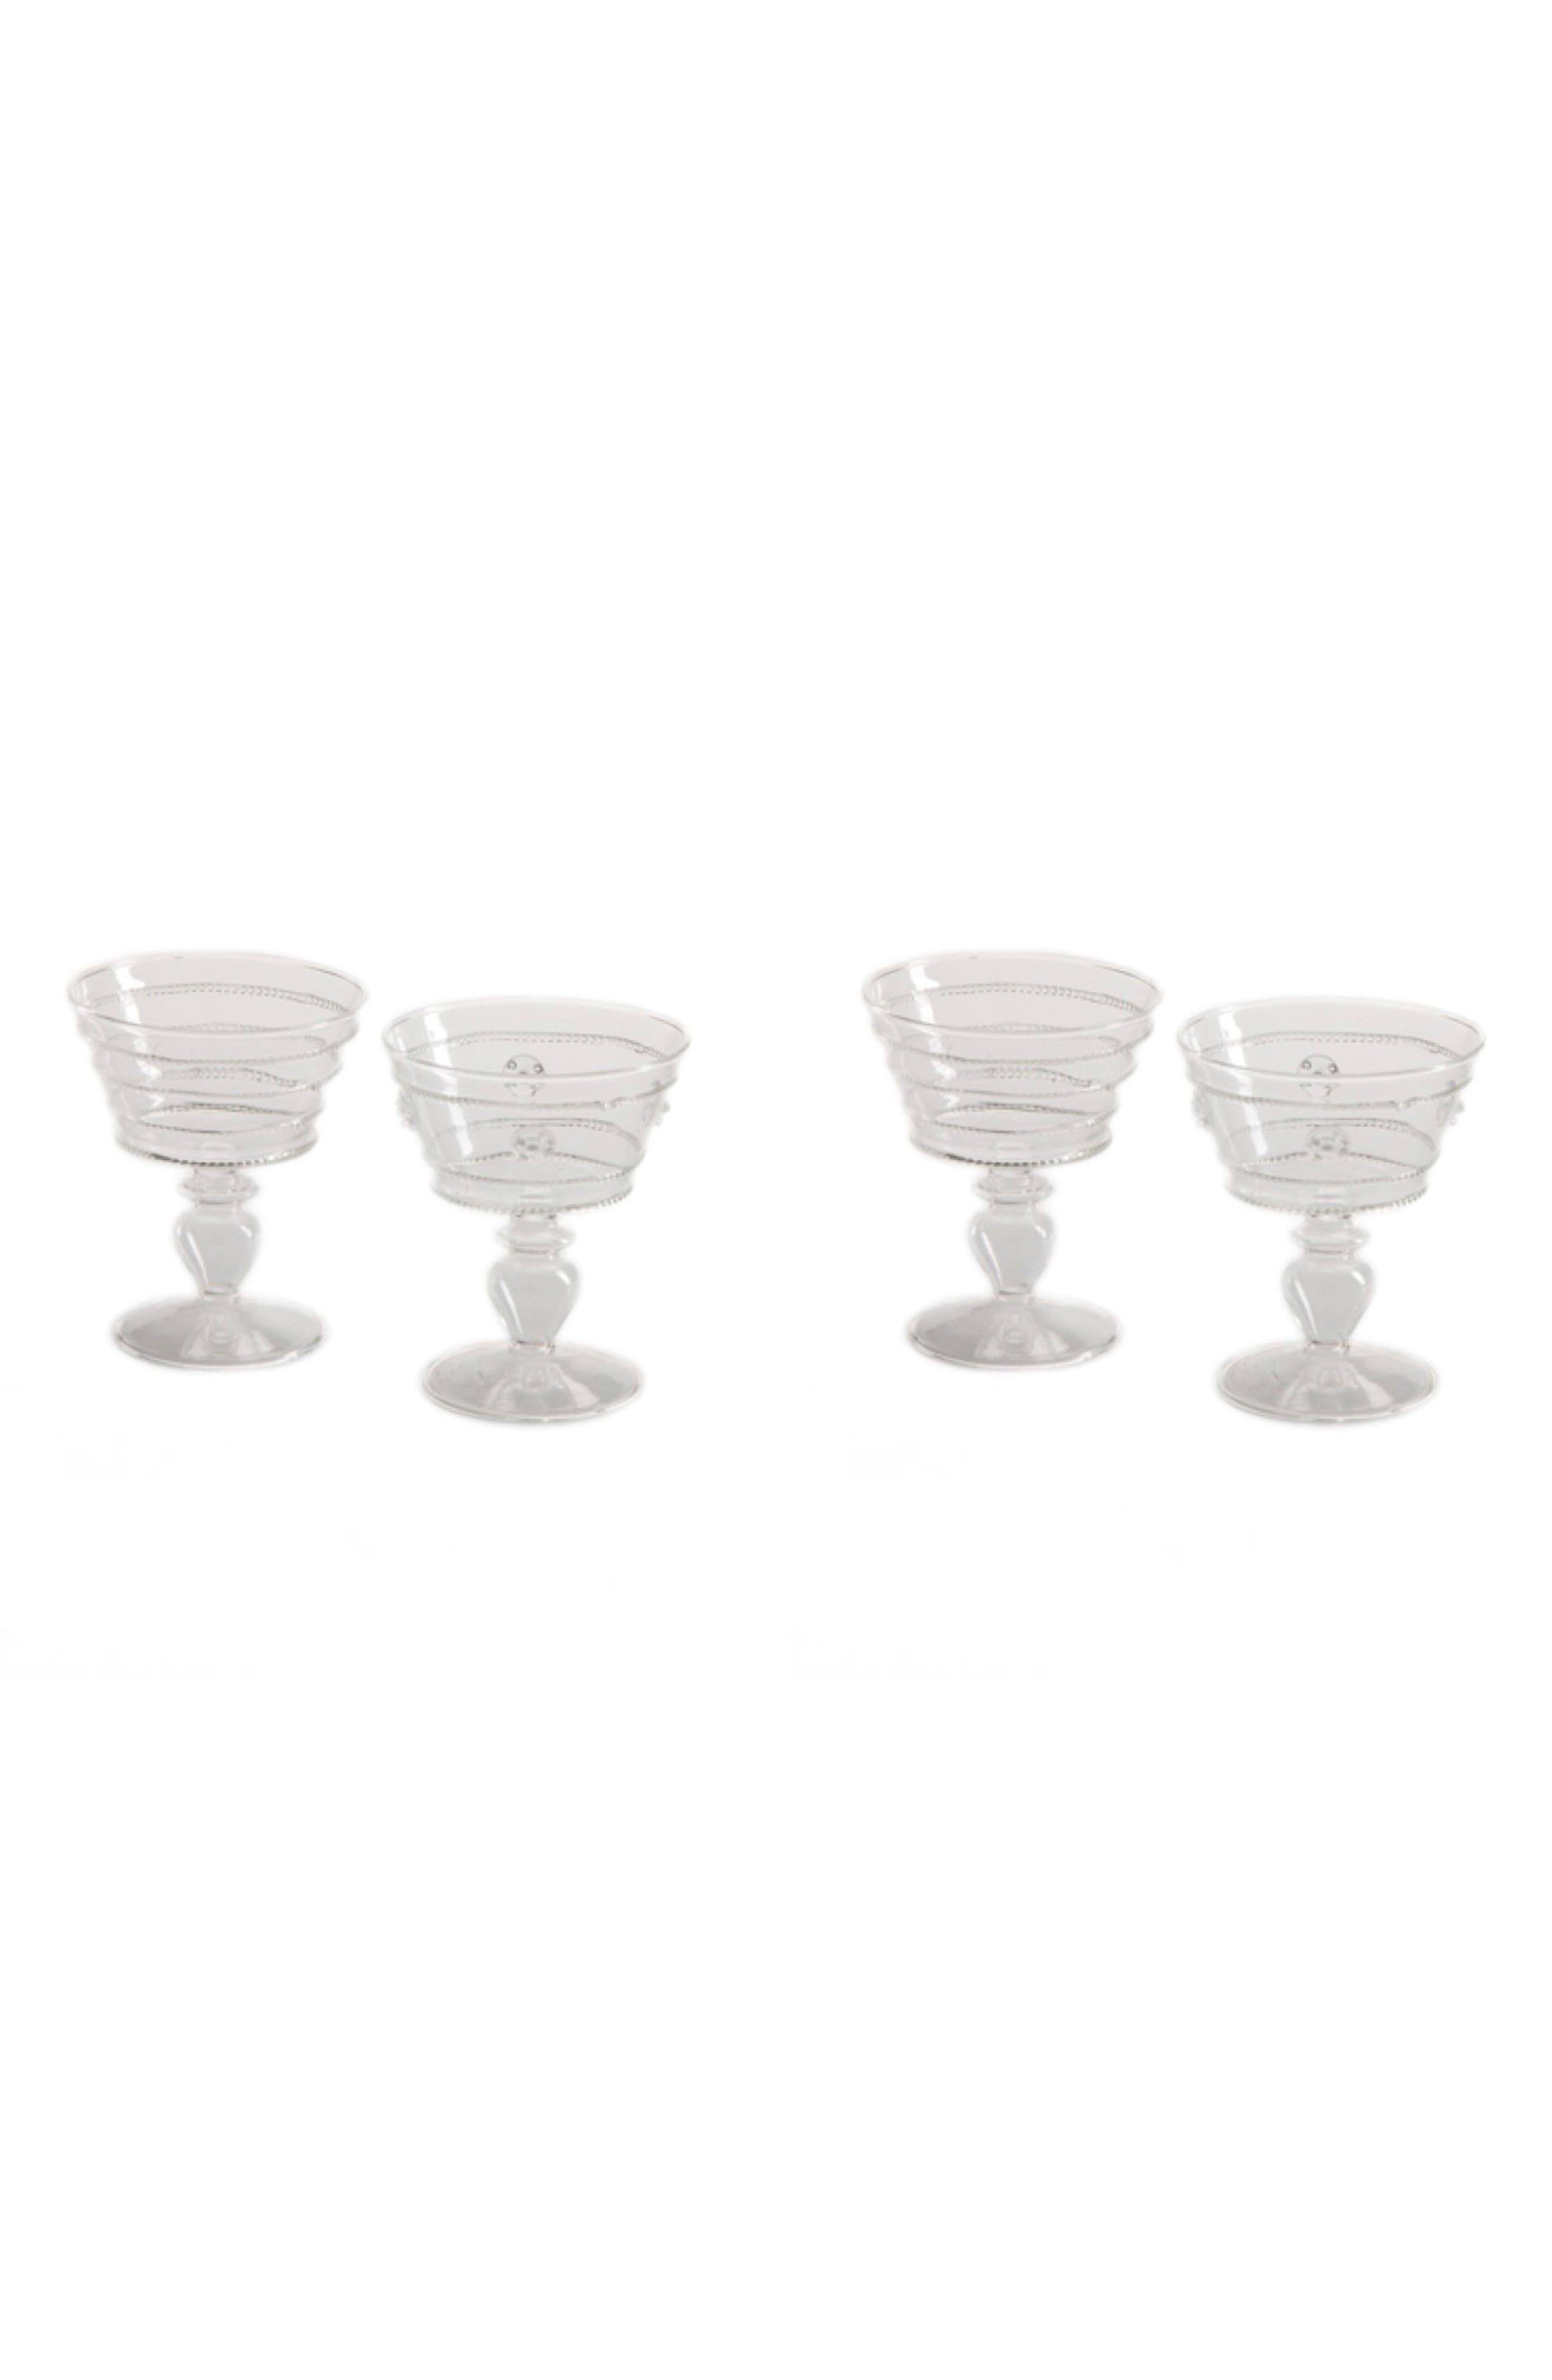 Set of 4 Compote Bowls,                         Main,                         color,